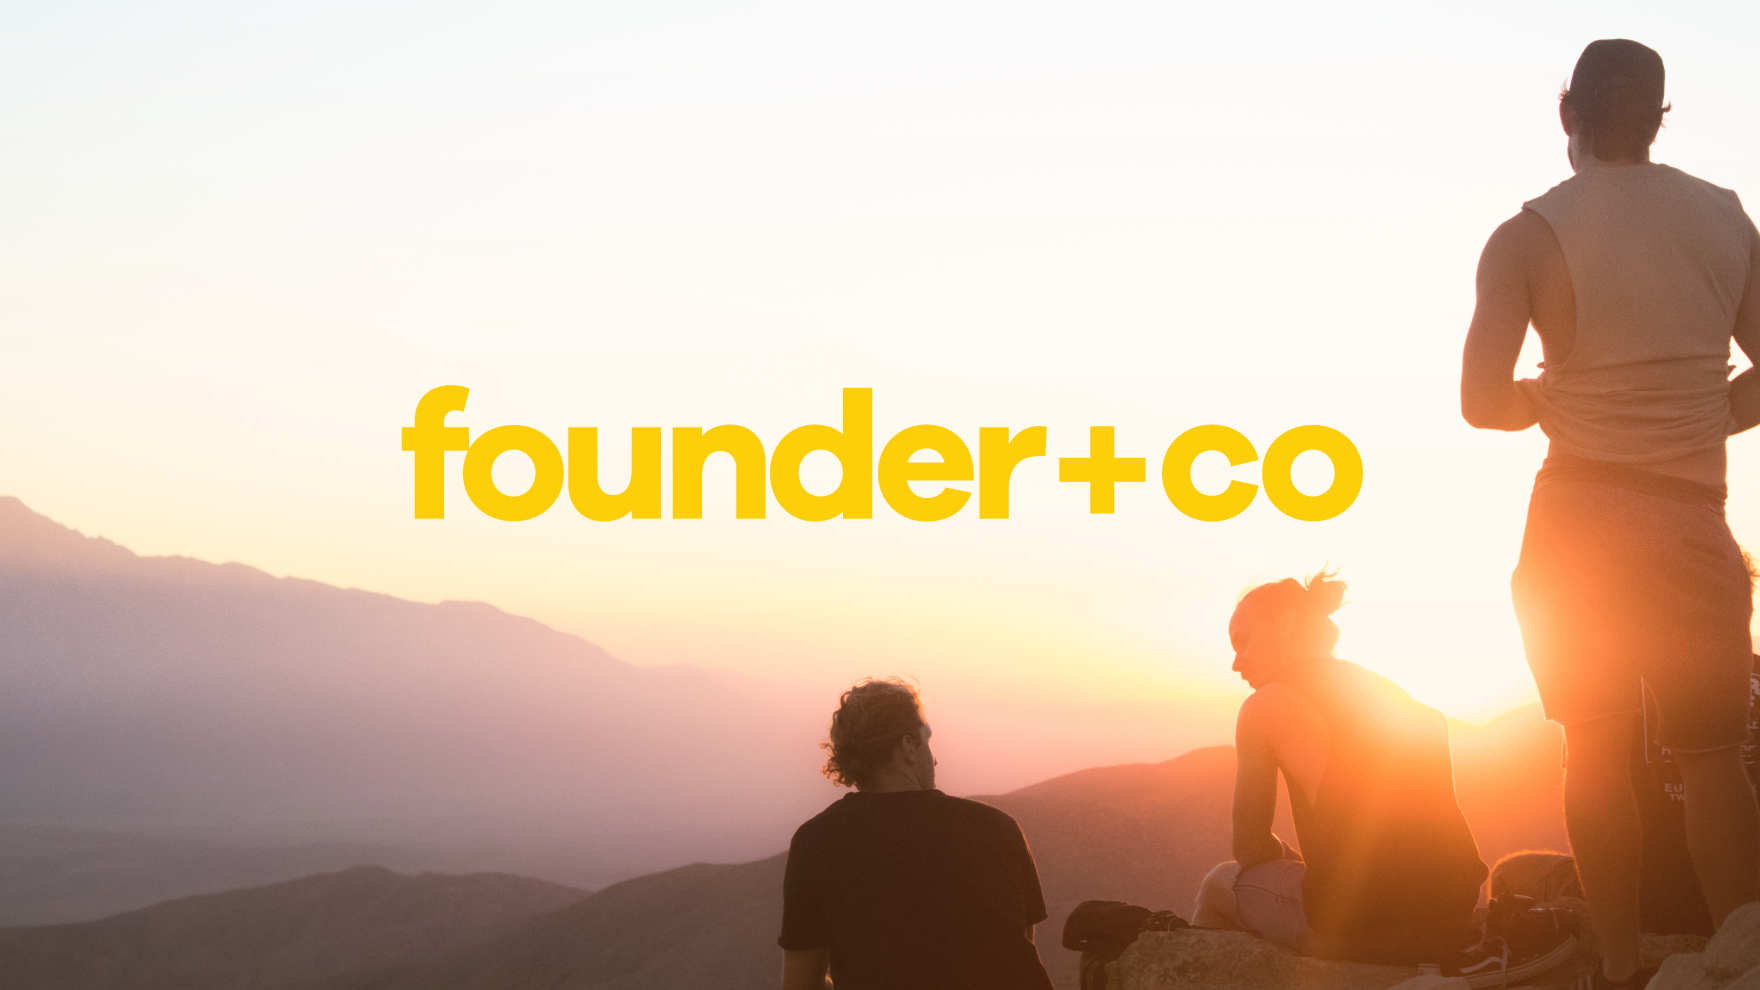 Founder+Co